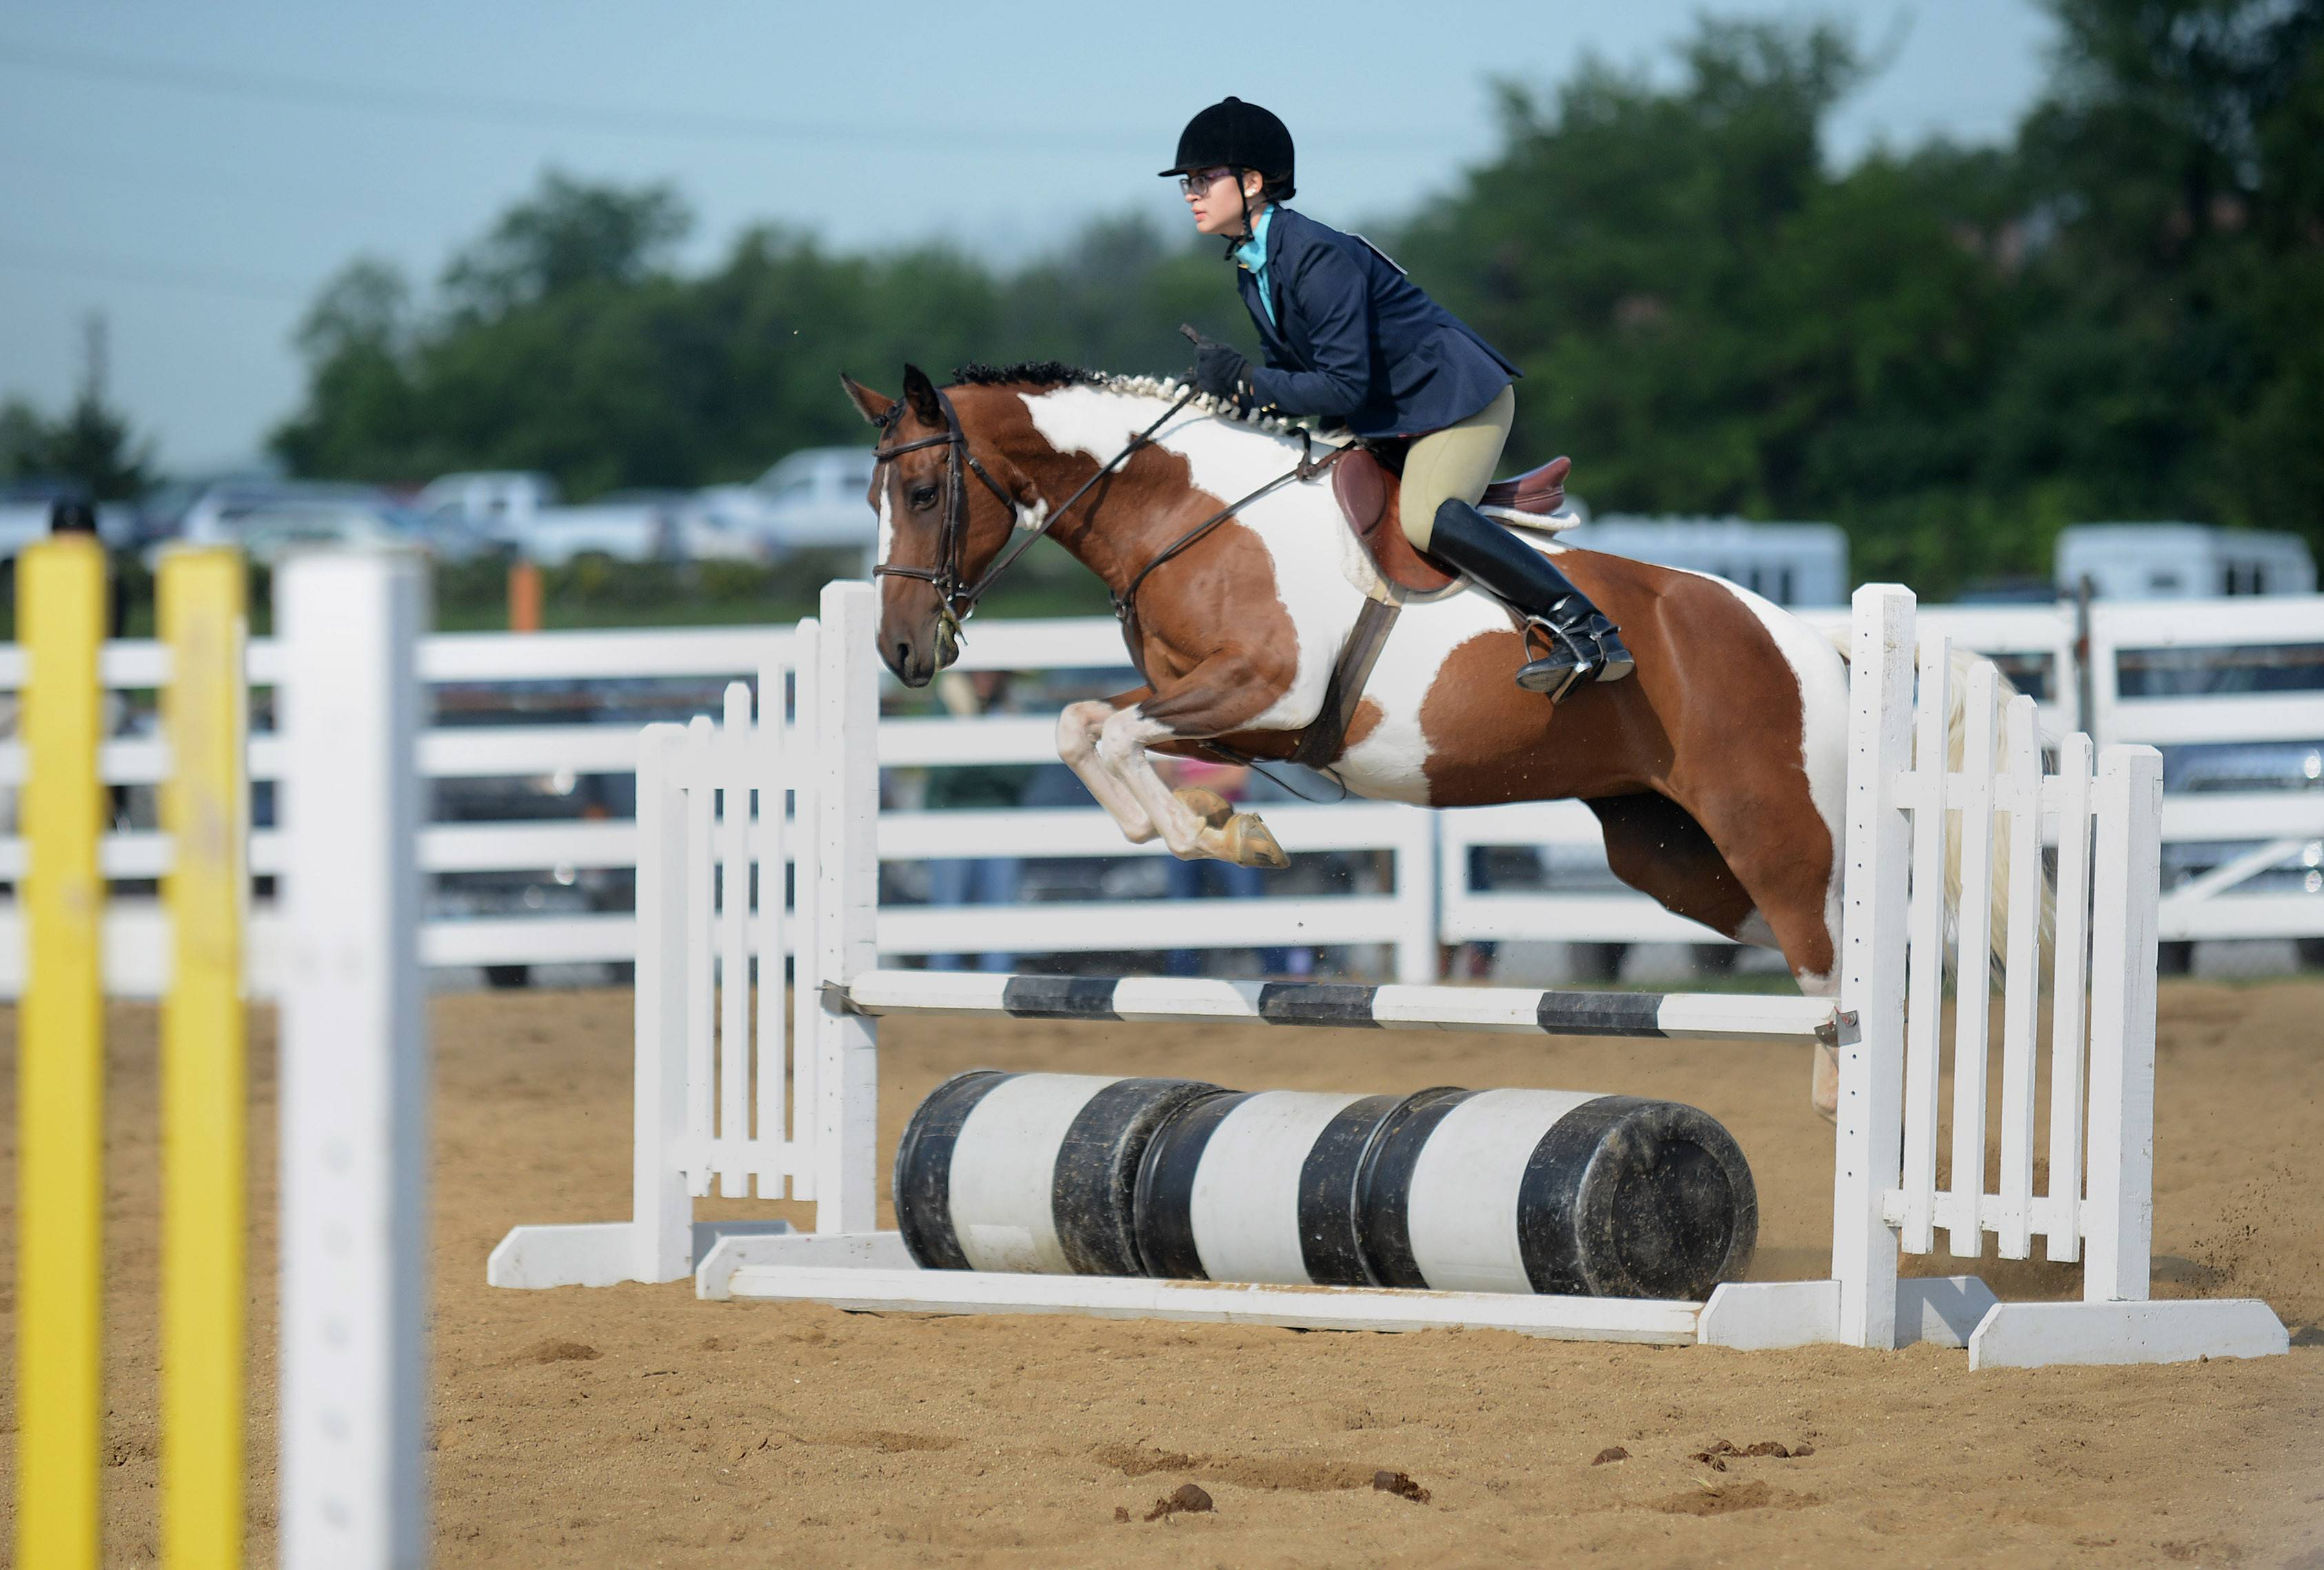 Madde Klinkey, 15, of Wasco, and her horse, Coco, compete in jumping Thursday morning at the Kane County Fair in St. Charles. She is a member of the A Bit More 4-H Club. Coco's full name is Shimmy Shimmy Coco Pop.